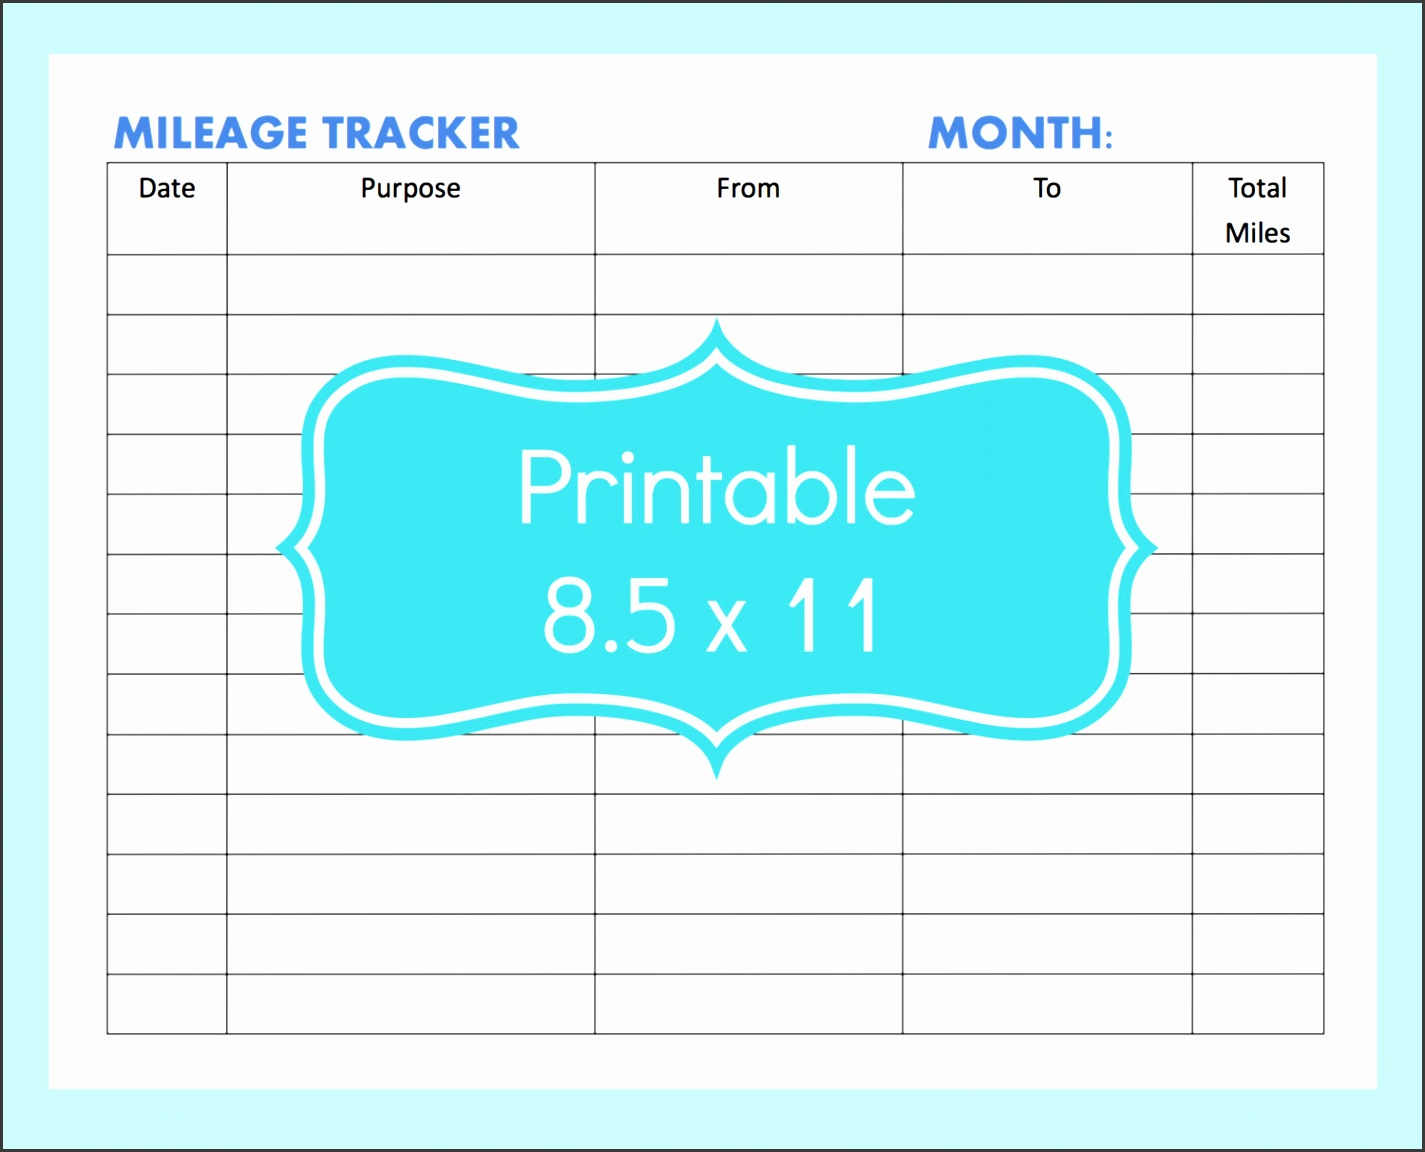 mileage tracker form printable